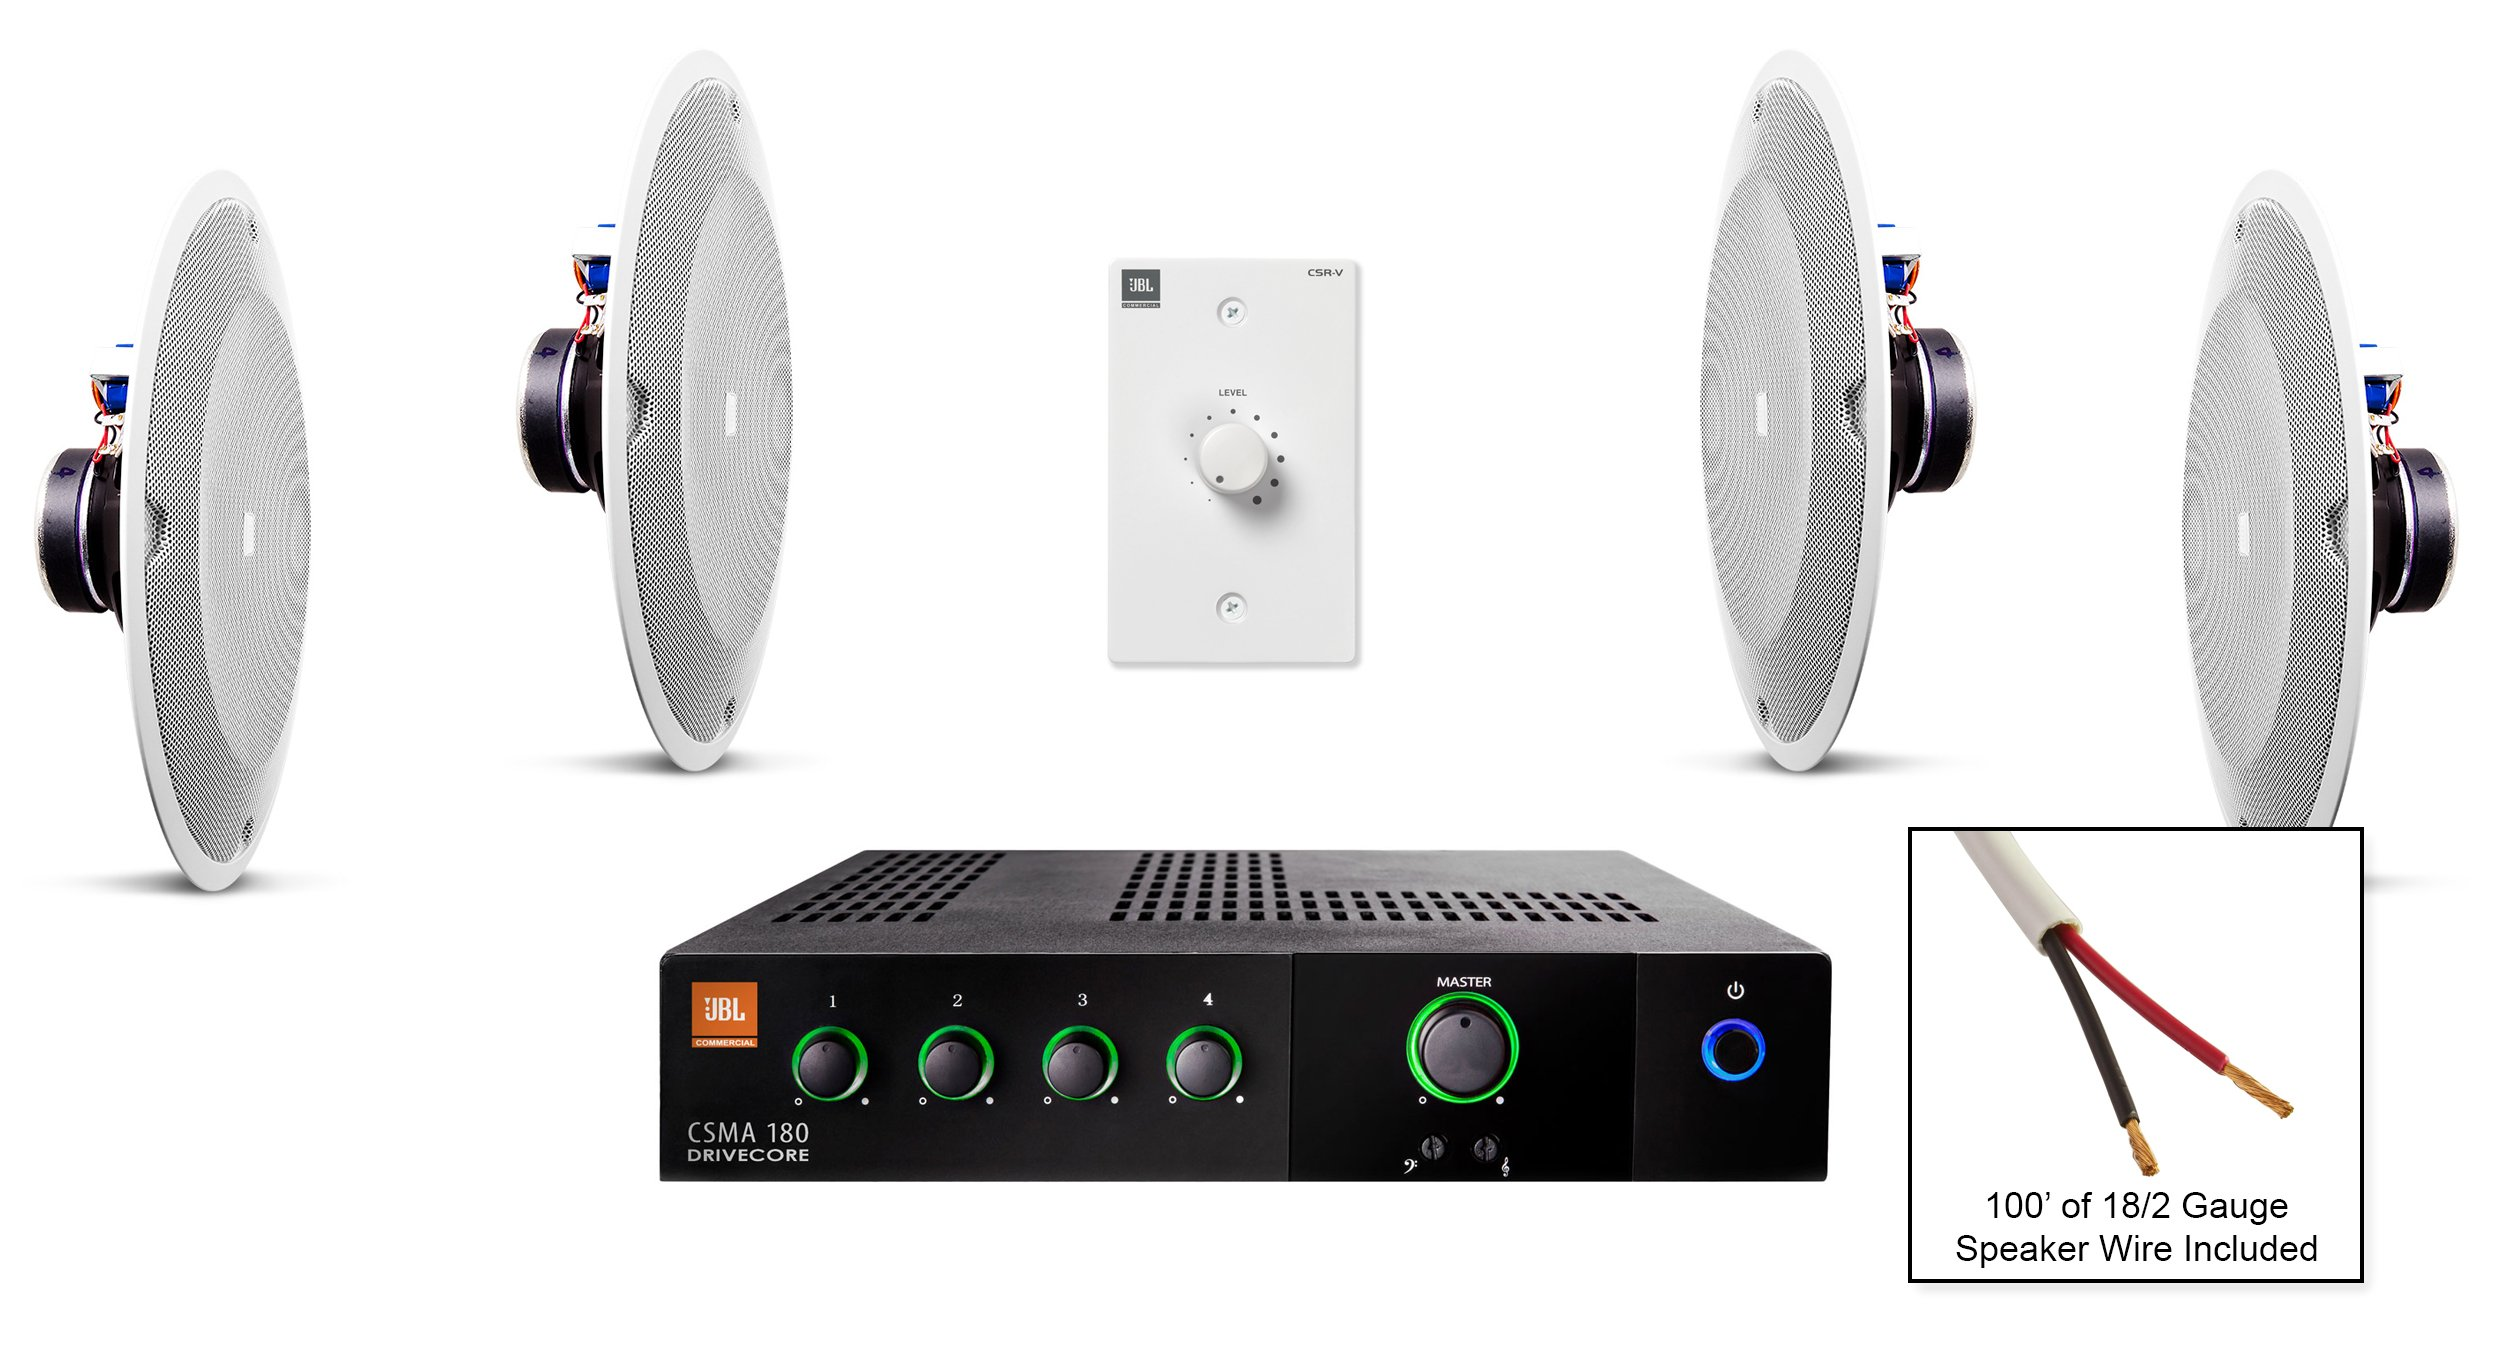 JBL 8138 In-Ceiling Loudspeaker Bundle with JBL CSMA 180 Mixer Amplifier and Accessories - Restaurant Sound System (15 Items)